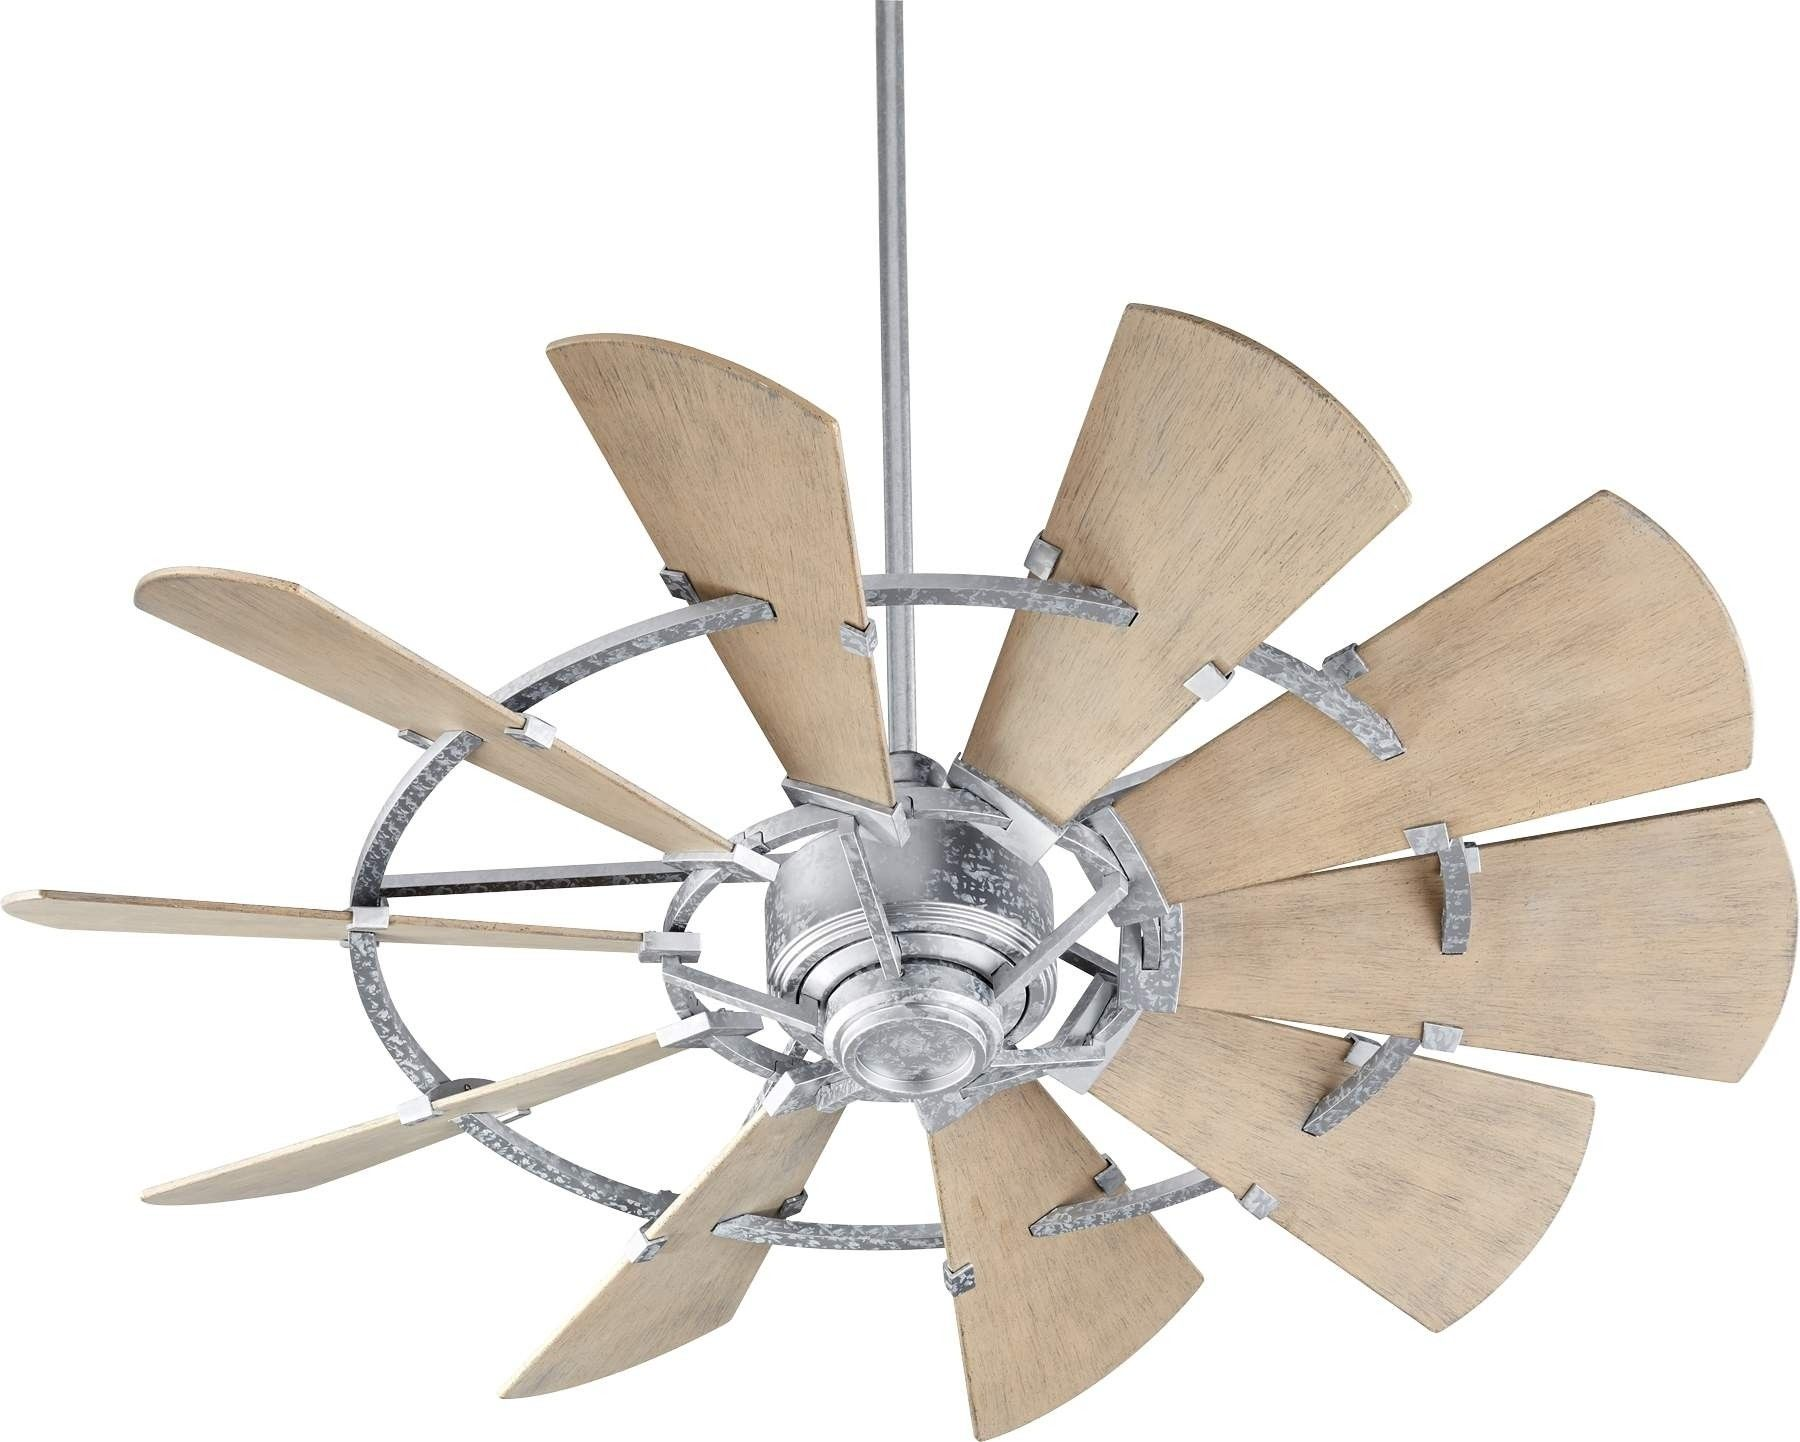 52 Quorum Windmill Ceiling Fan Damp Rated Model 195210 9 In Galvanized Windmill Ceiling Fan Ceiling Fan